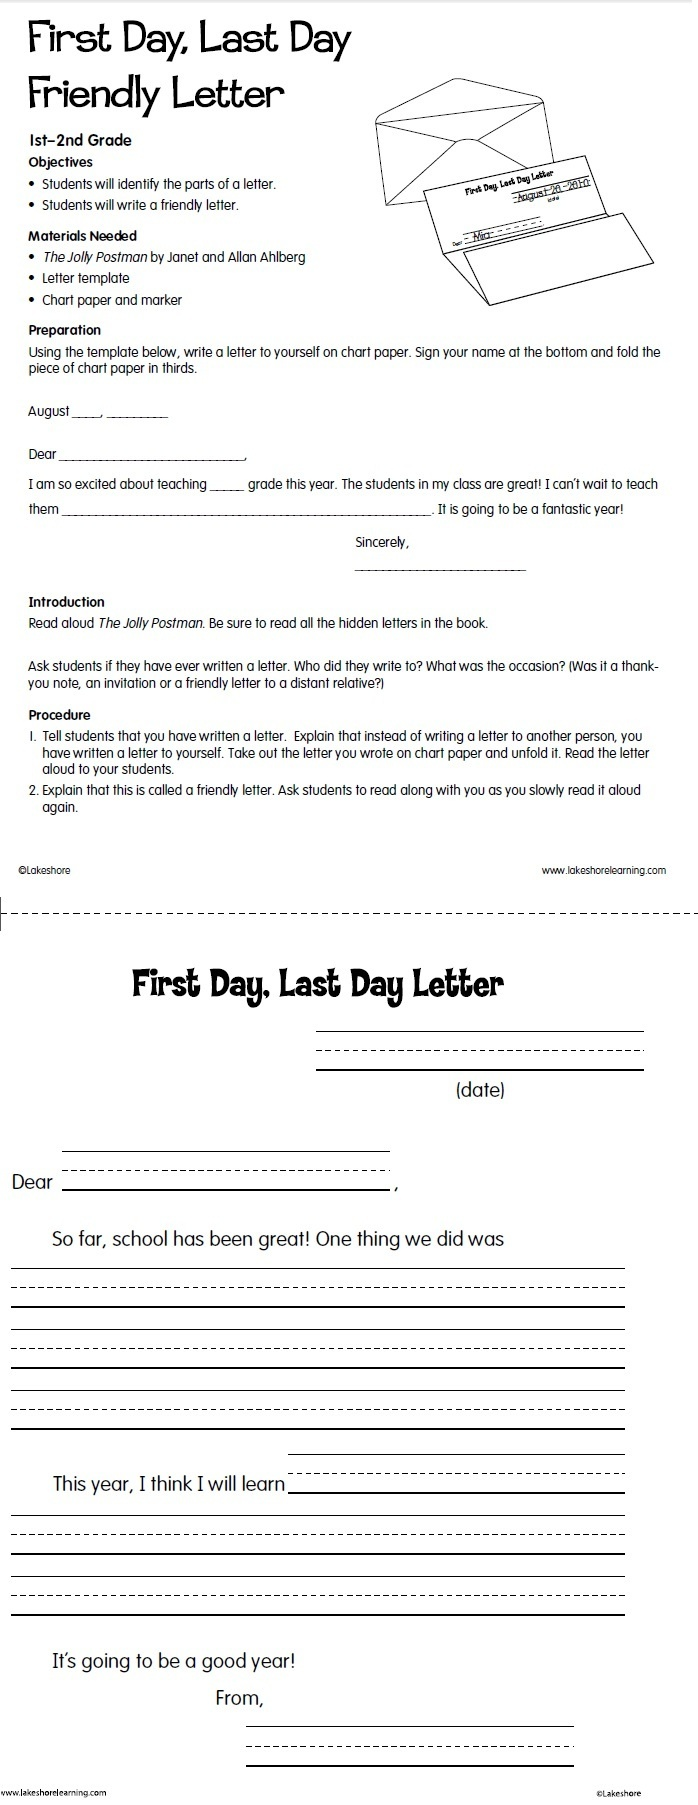 9 best the jolly postman images on pinterest teaching ideas first day last day friendly letter lesson plan from lakeshore learning spiritdancerdesigns Images